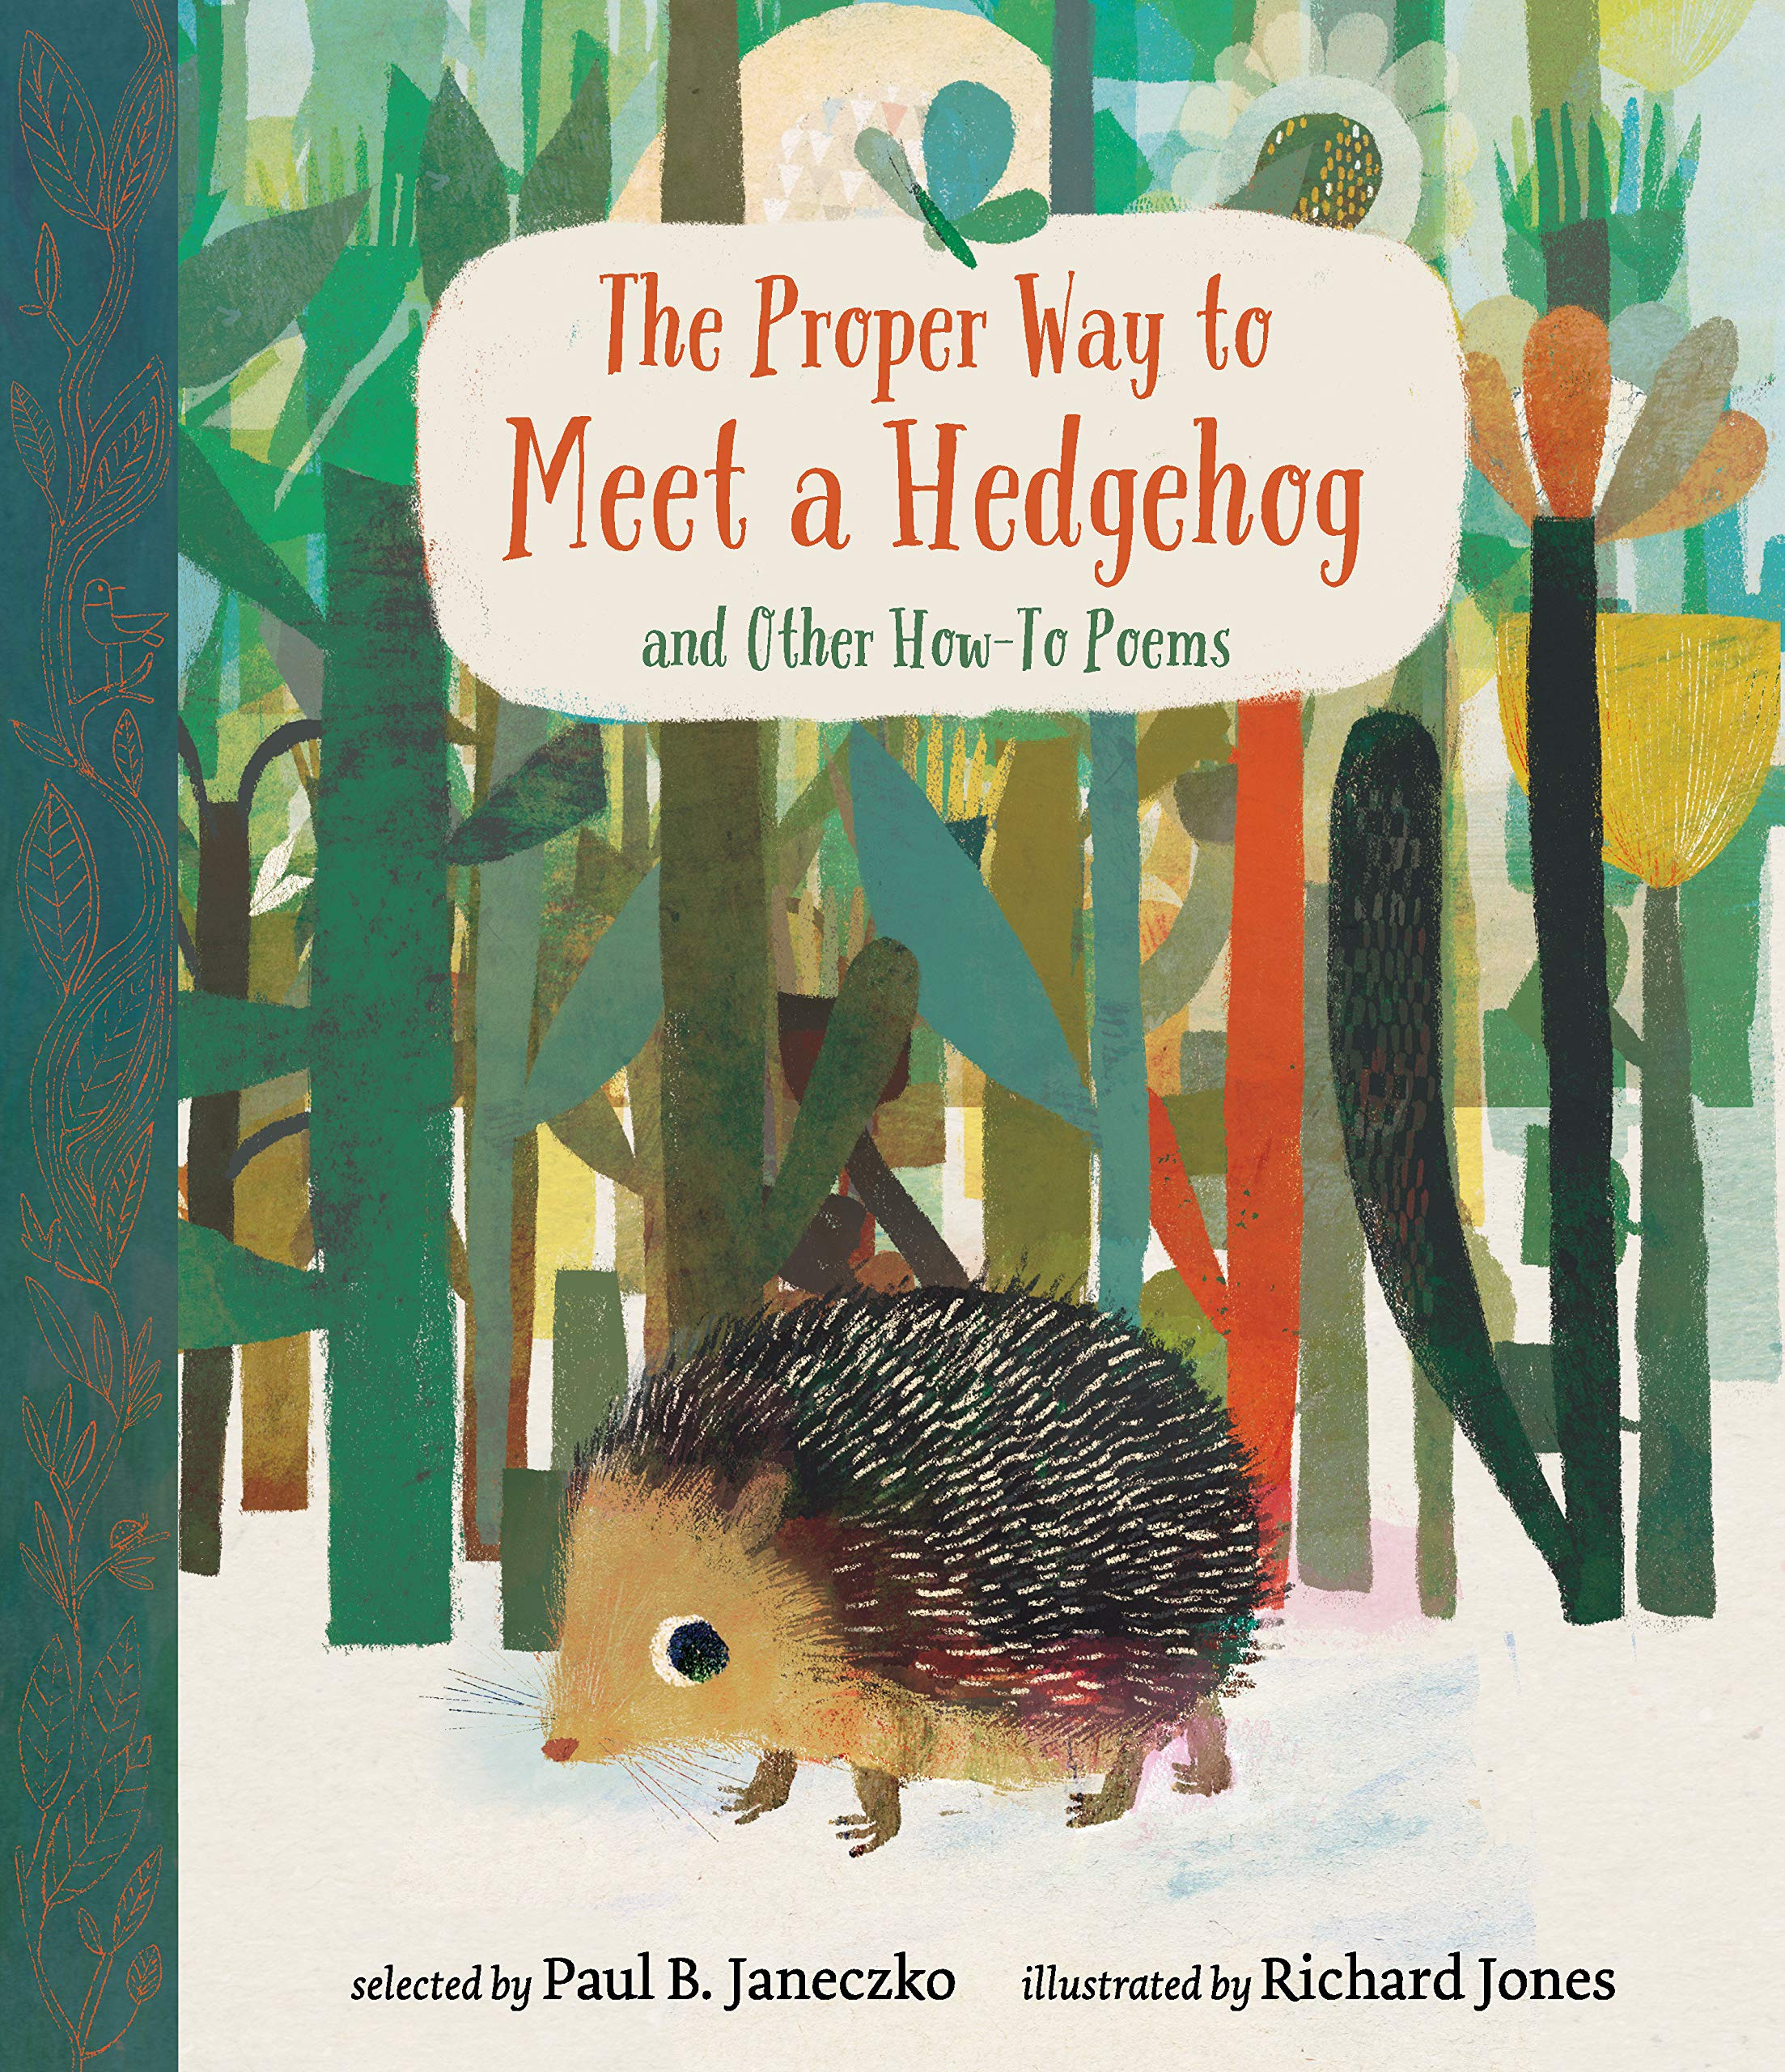 Image result for The Proper Way To Meet a Hedgehog by Paul Janeczko